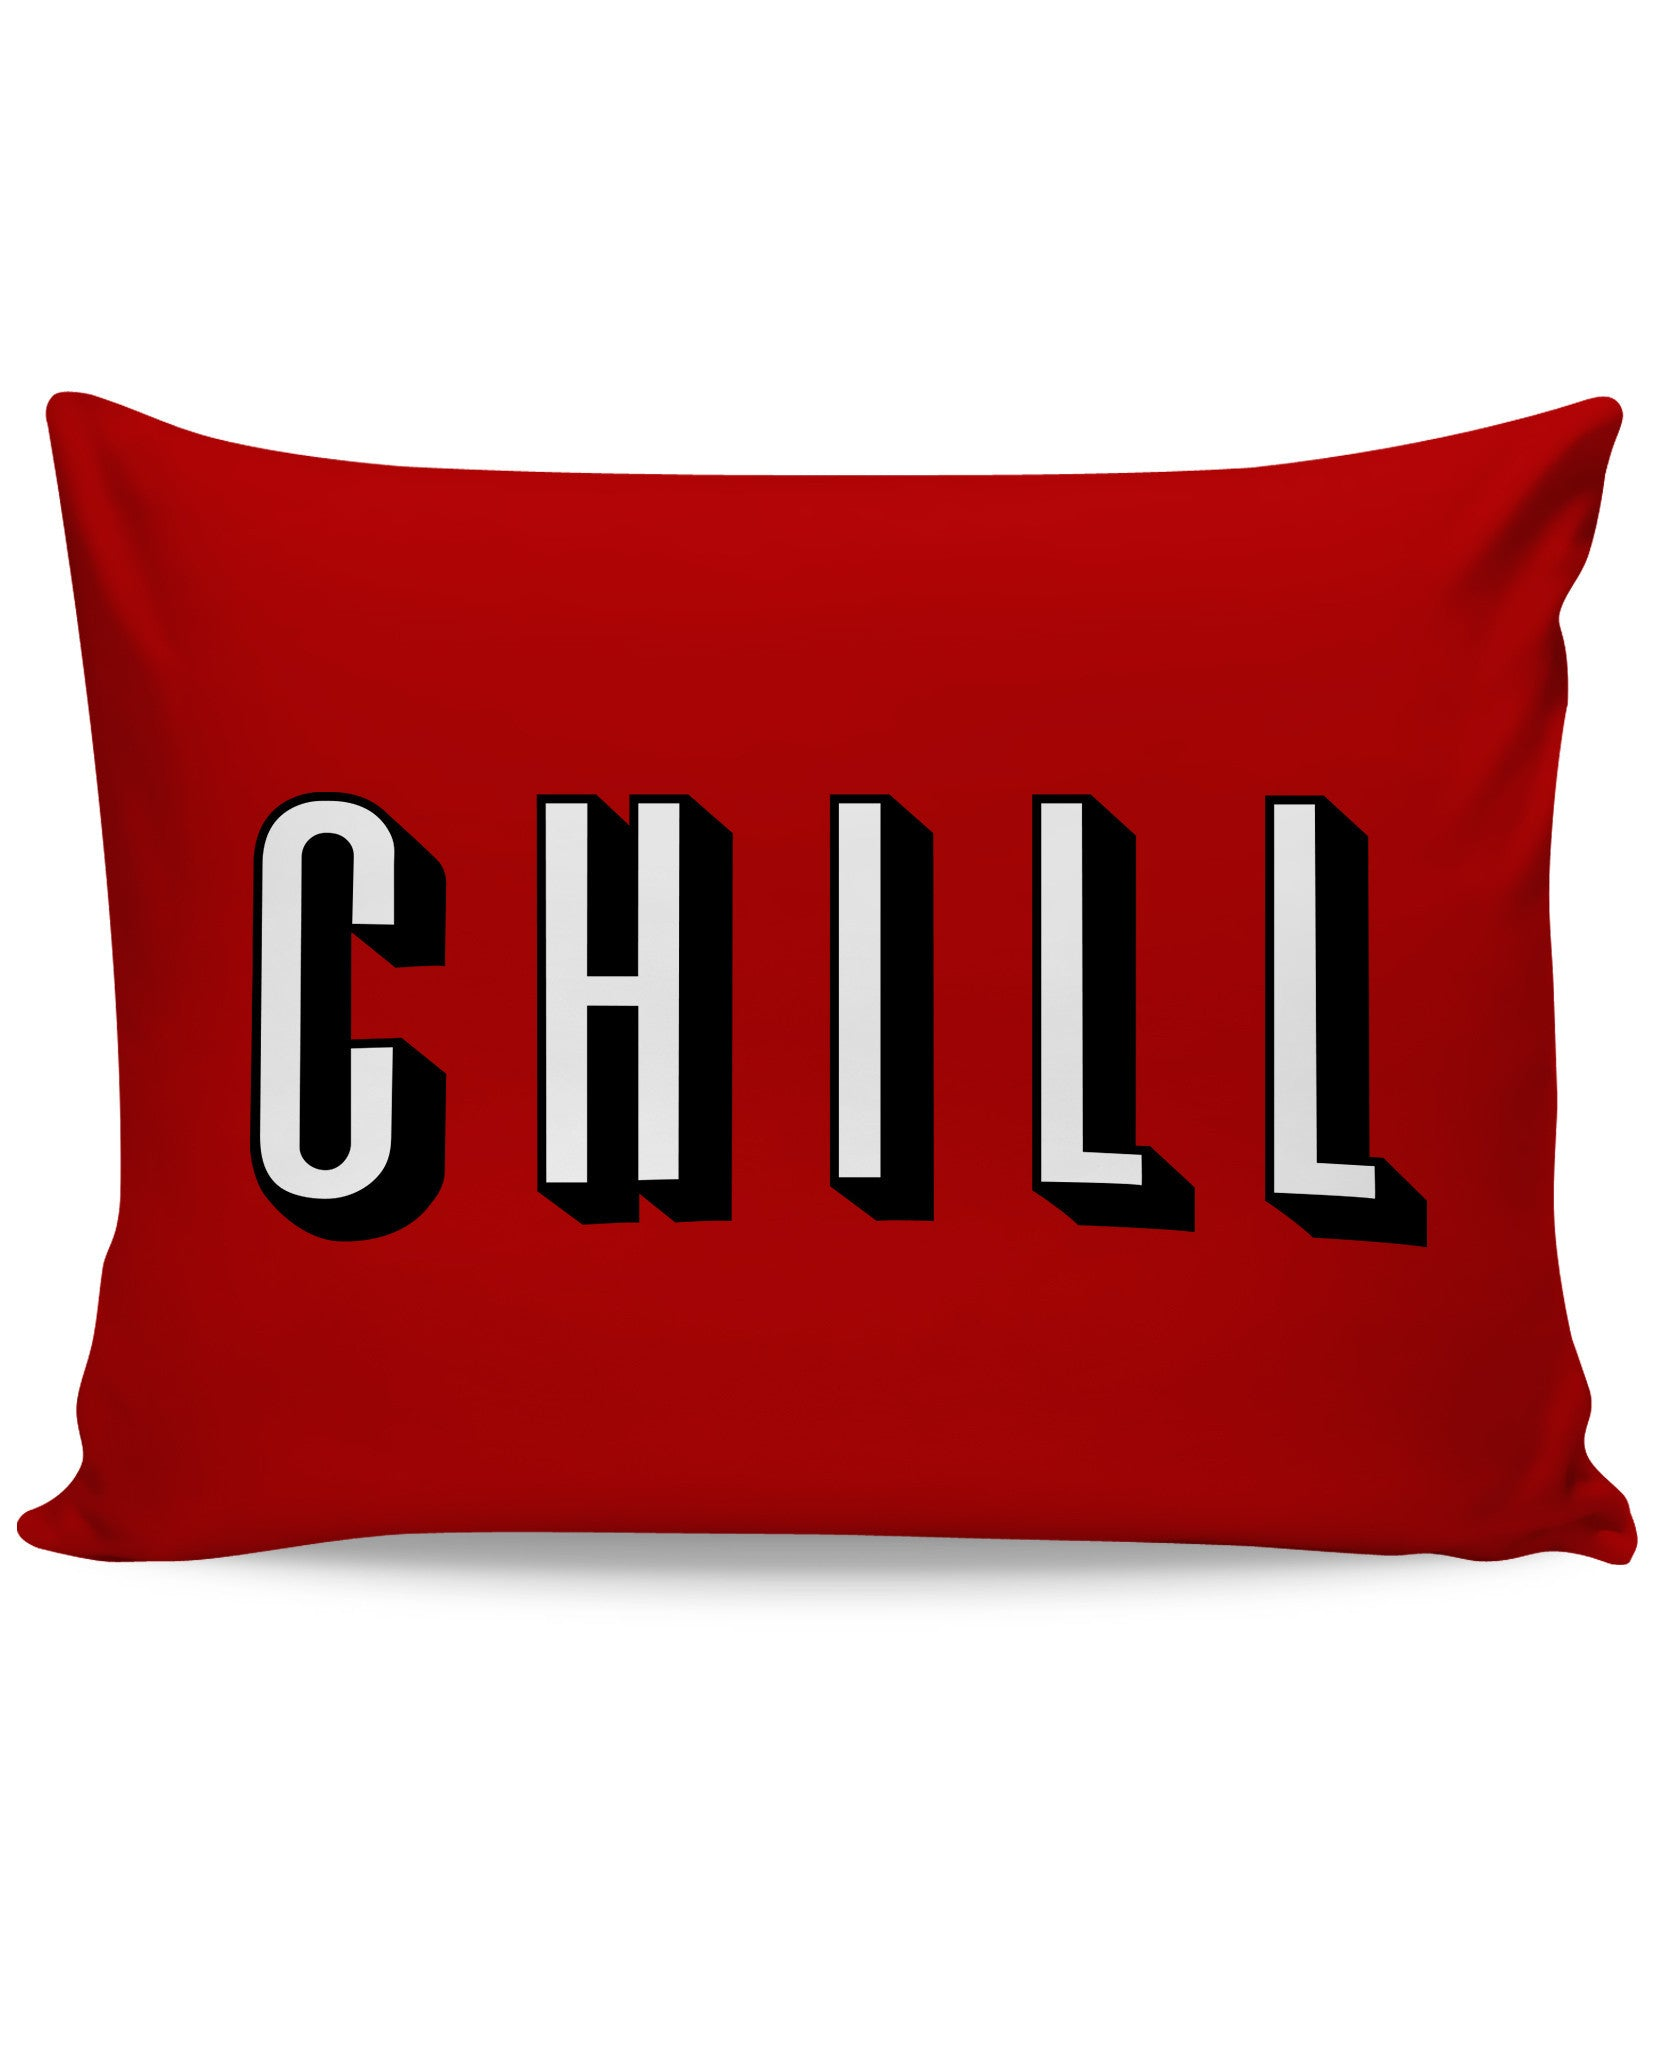 Chill Pillow Case